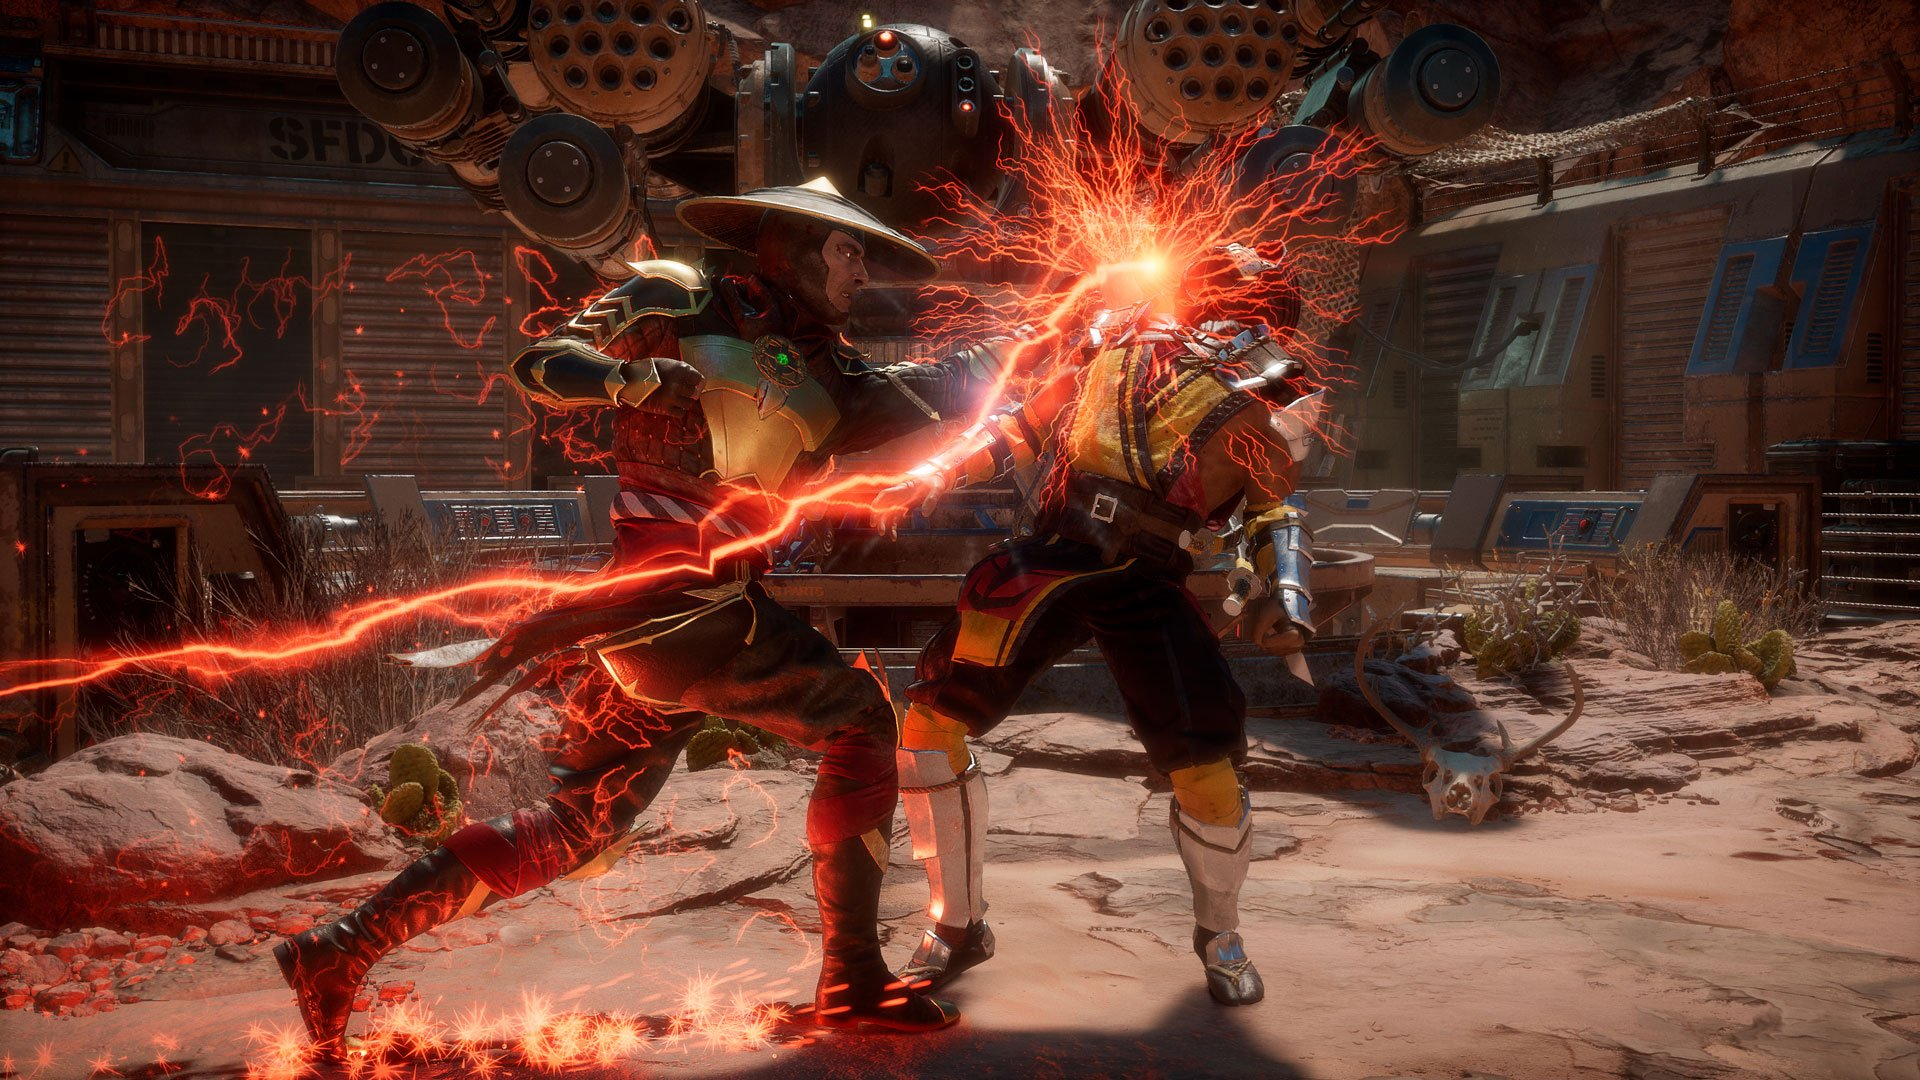 Is Mortal Kombat 11 coming to Nintendo Switch?